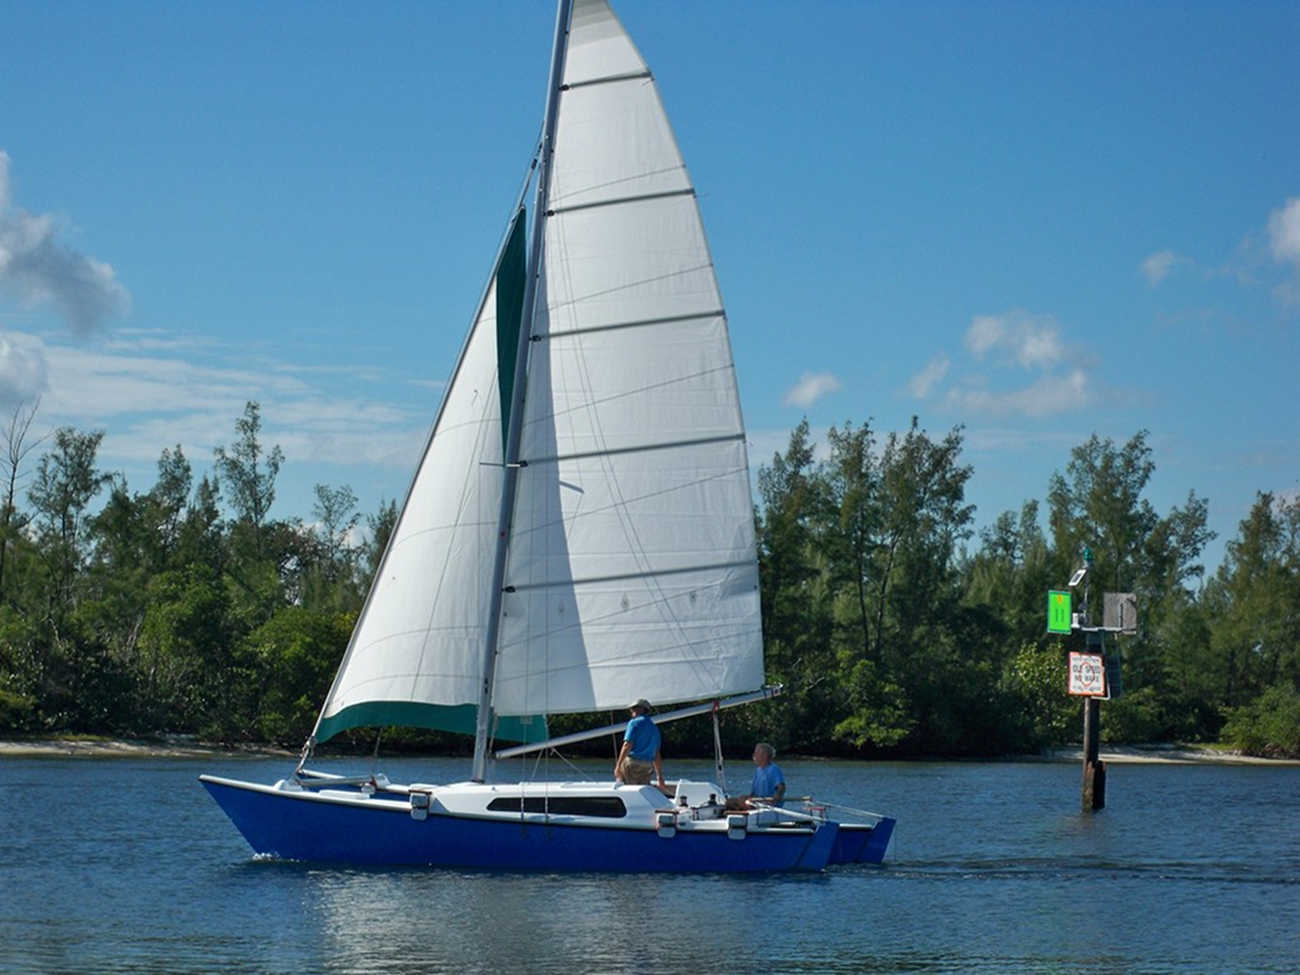 Blue Tiki 8m sailed by two people, trees in background